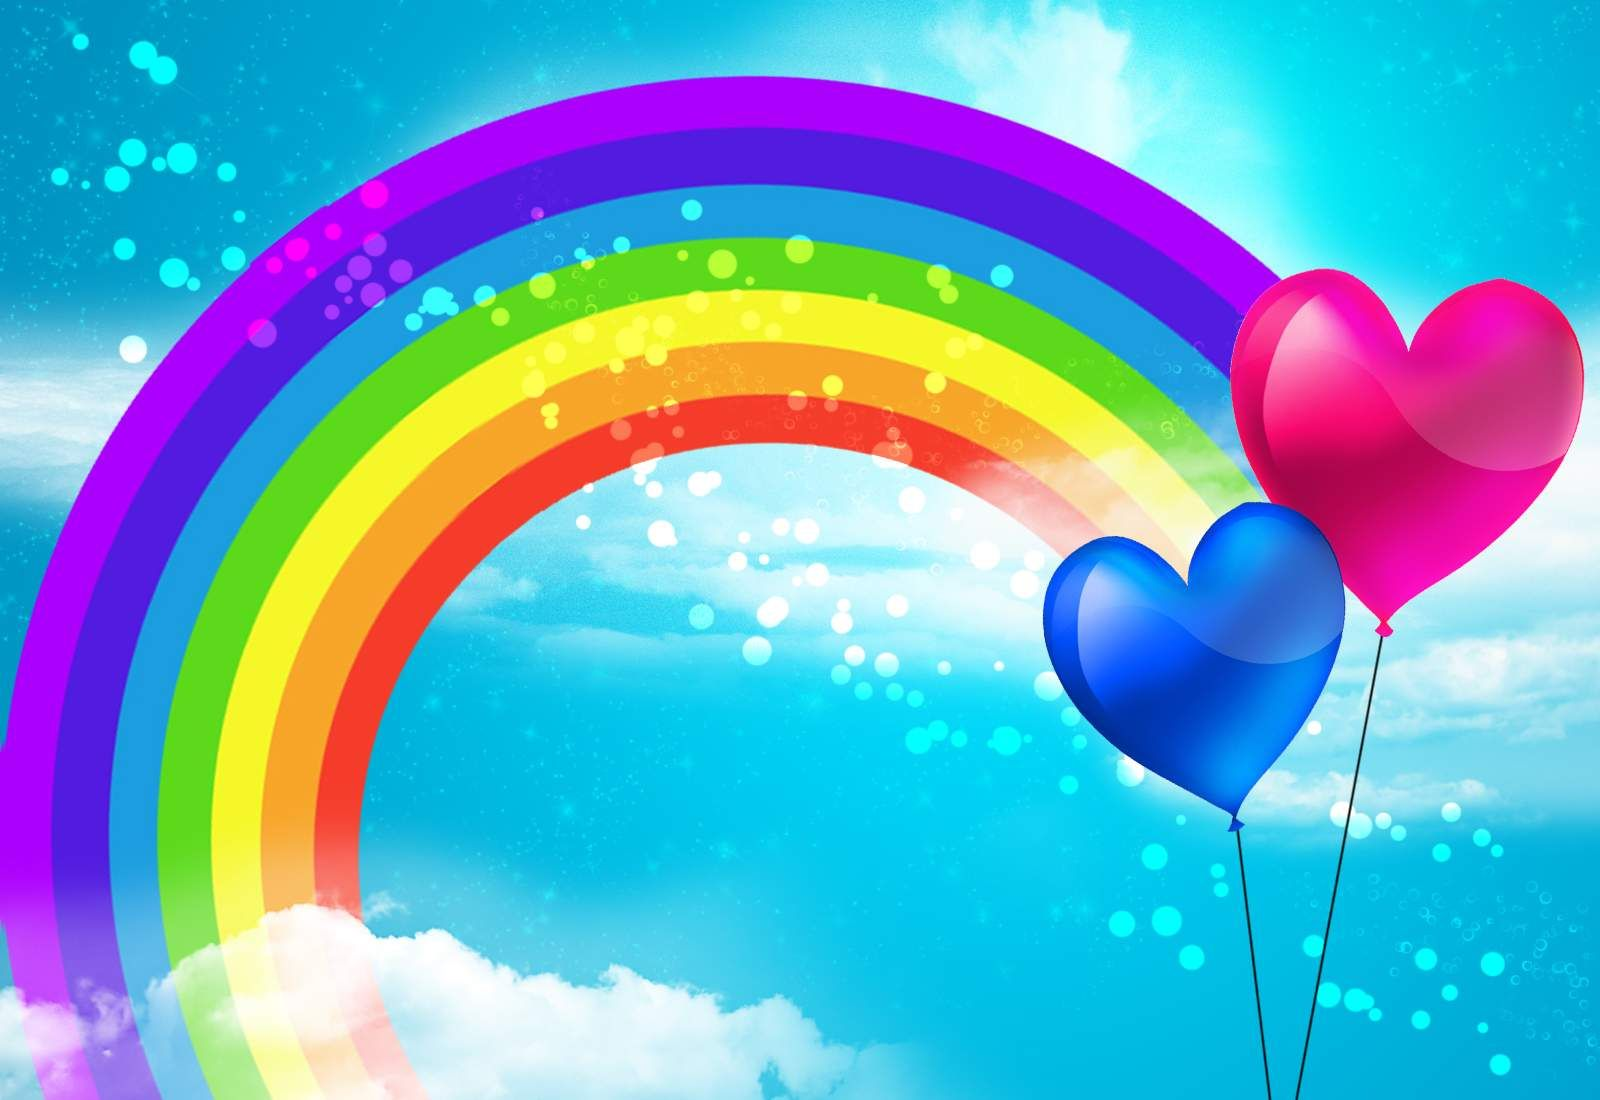 Image detail for free download wallpapers rainbows for Rainbow wallpaper for kids room